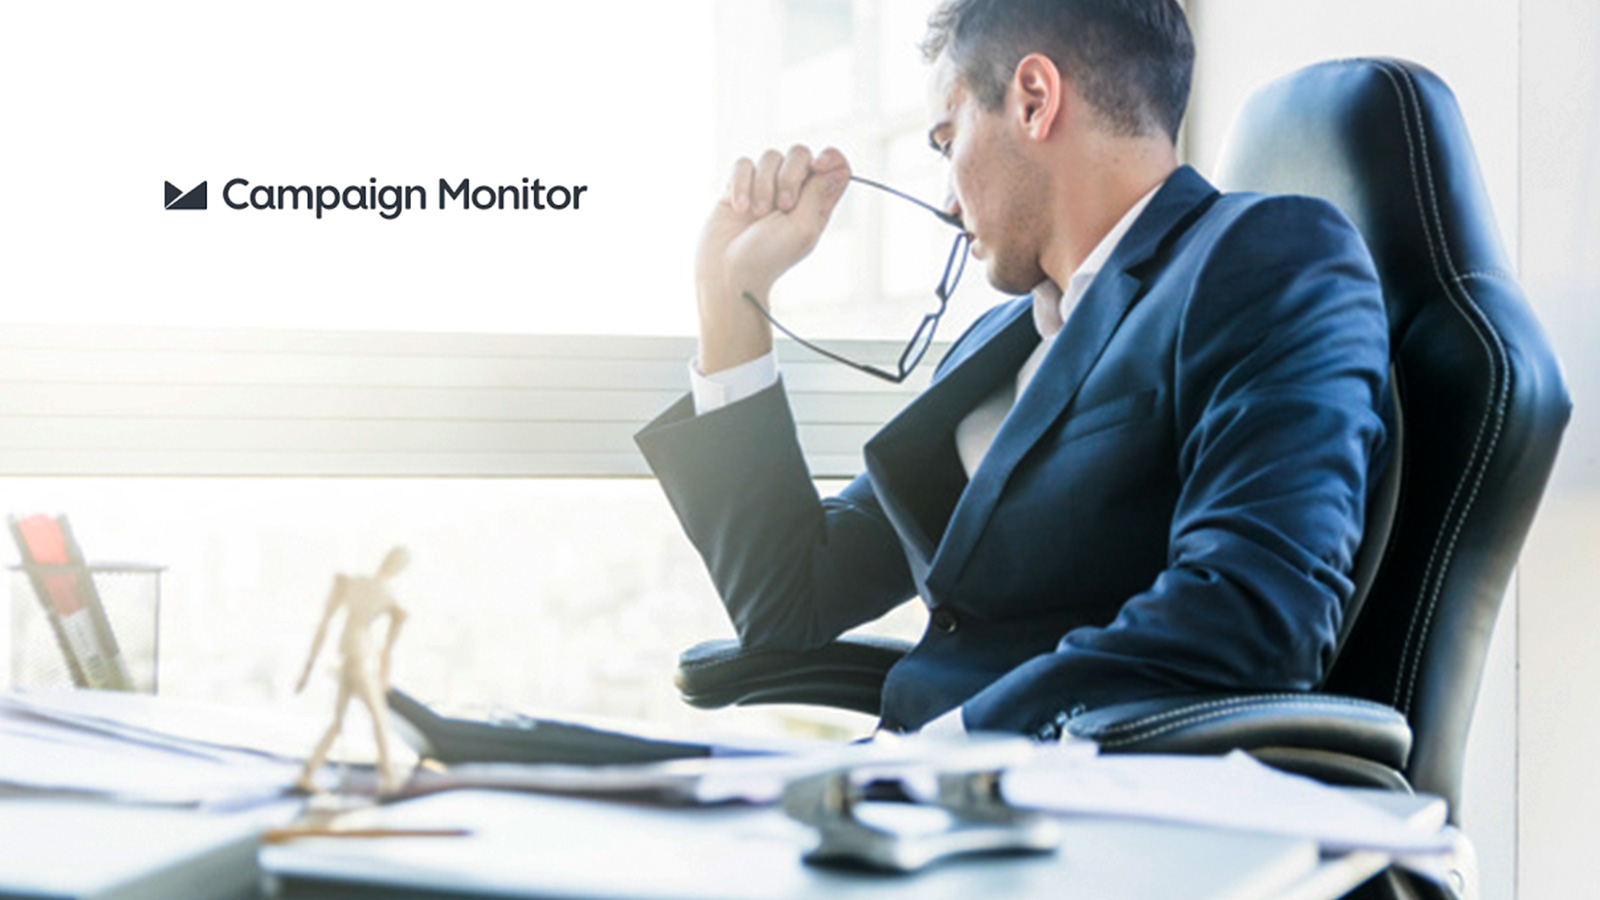 Campaign Monitor Appoints Sharon Strauss as Chief People Officer